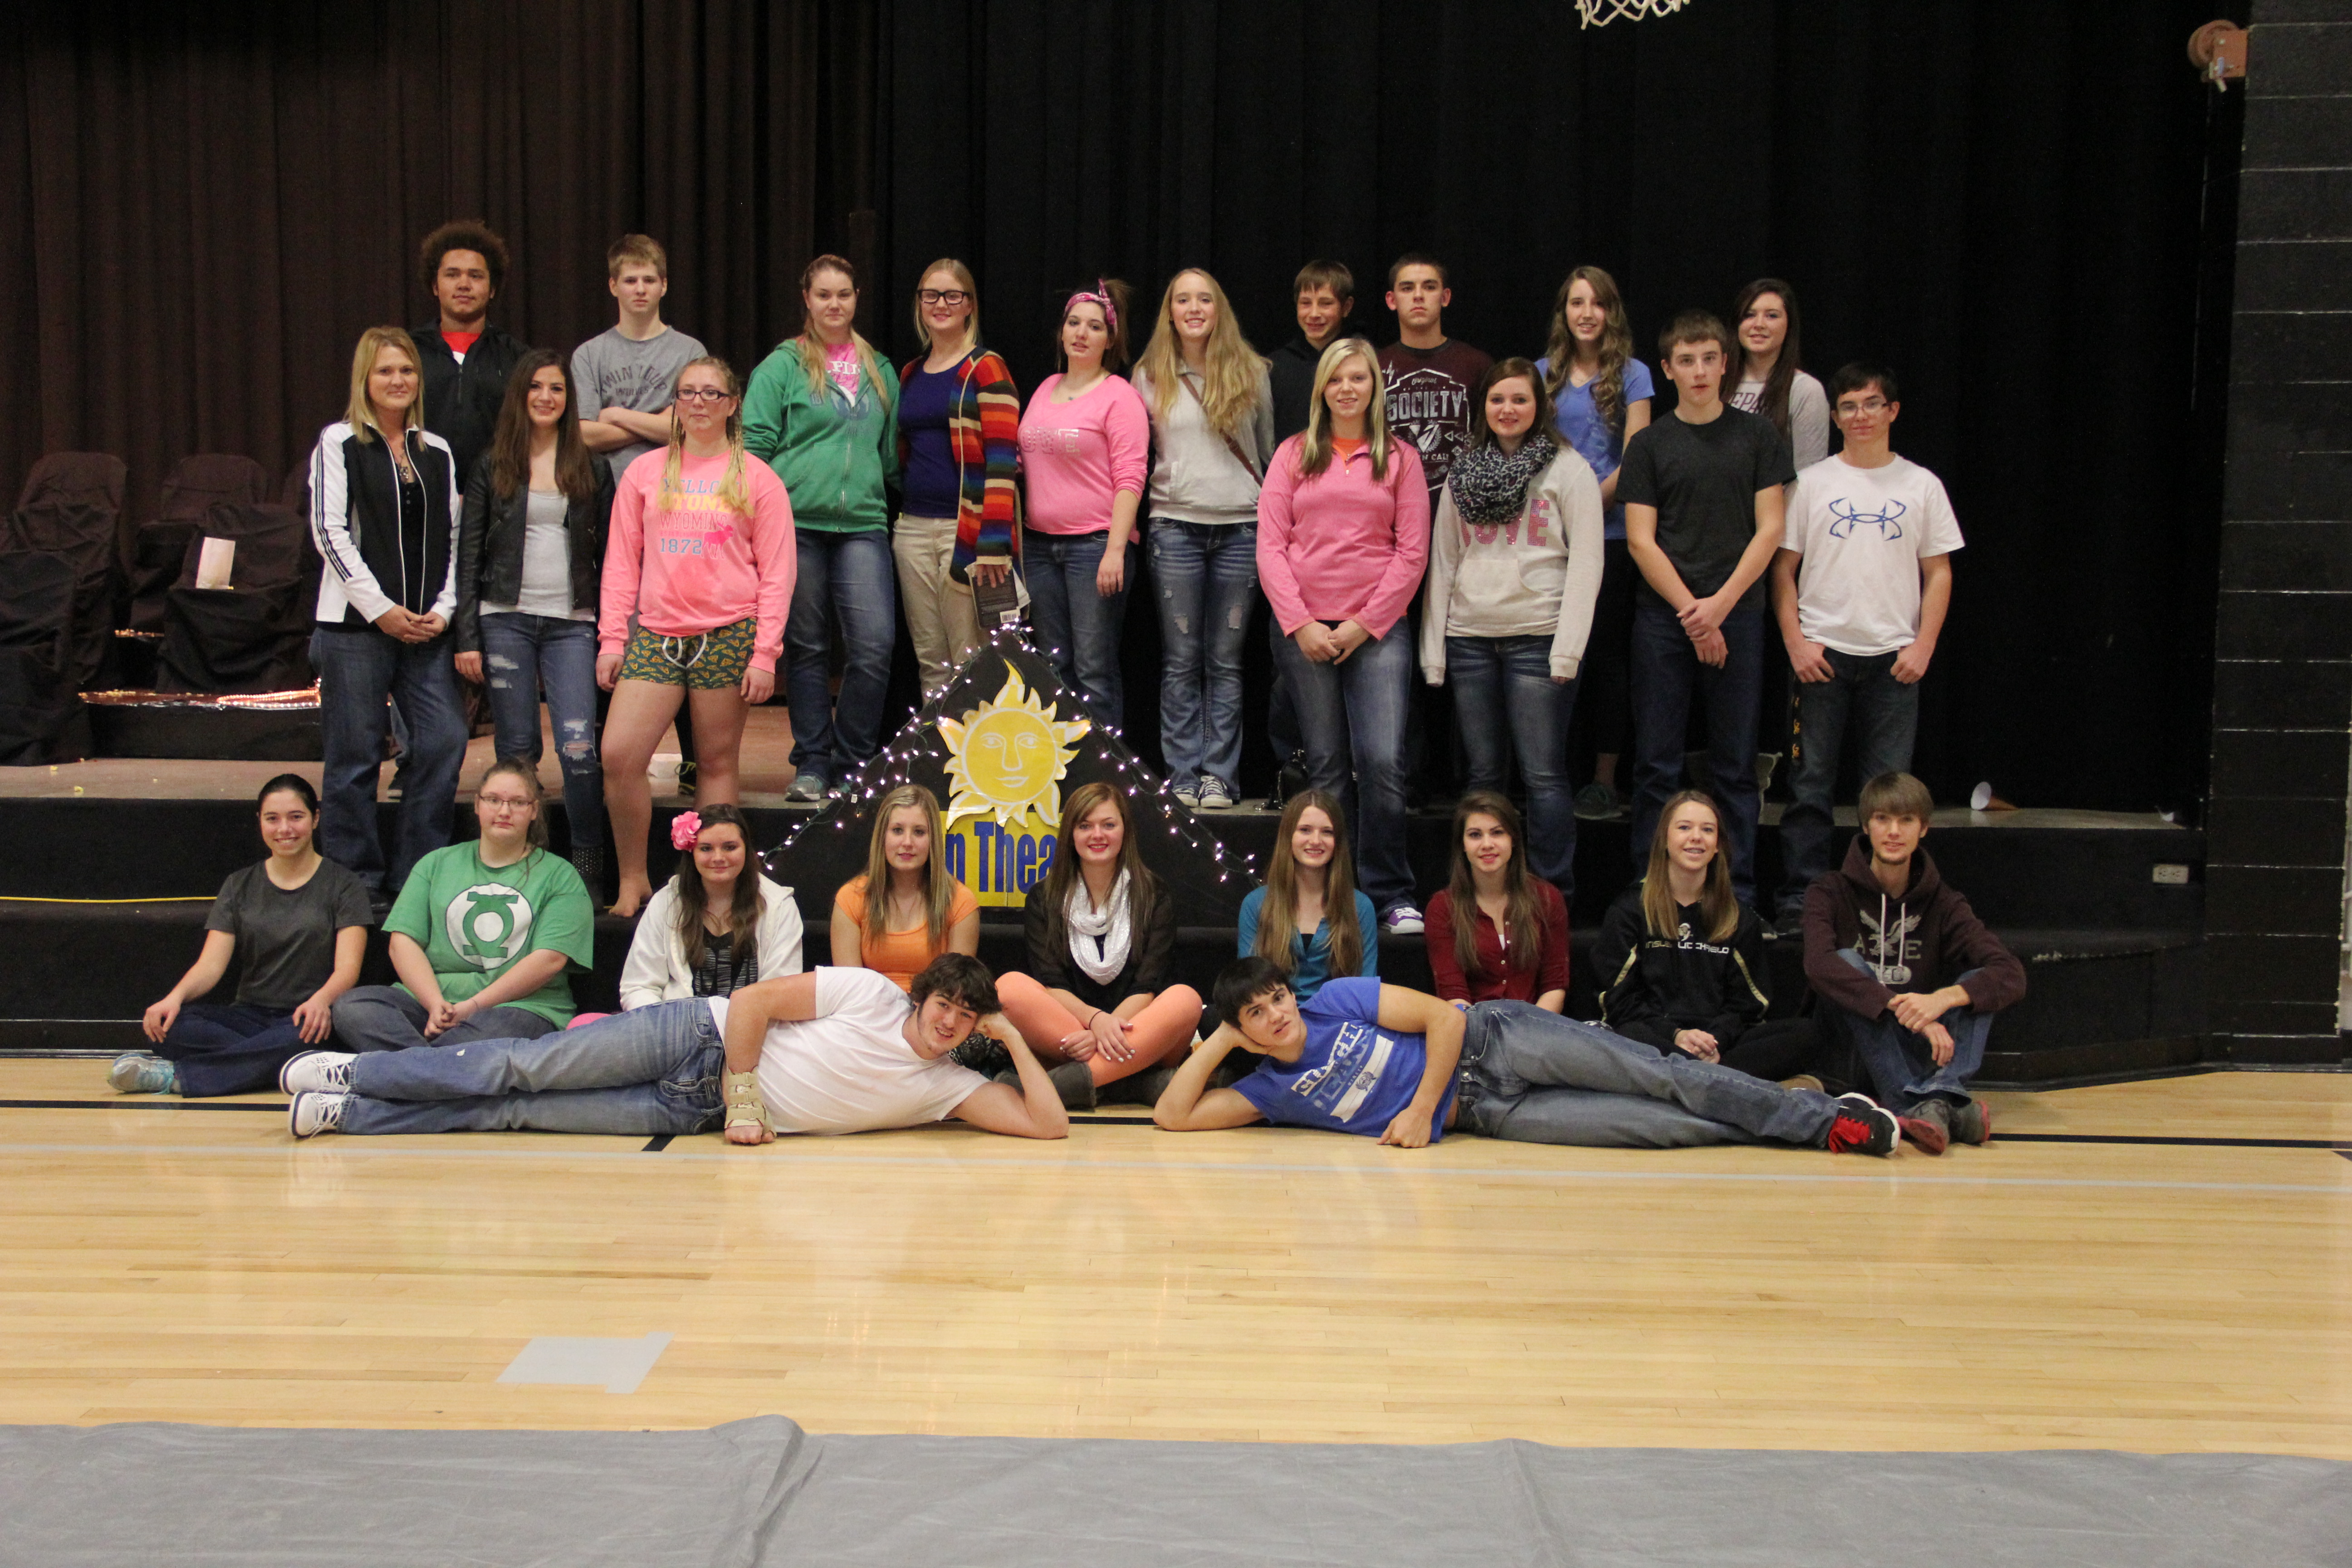 Group Pic Cast and Crew